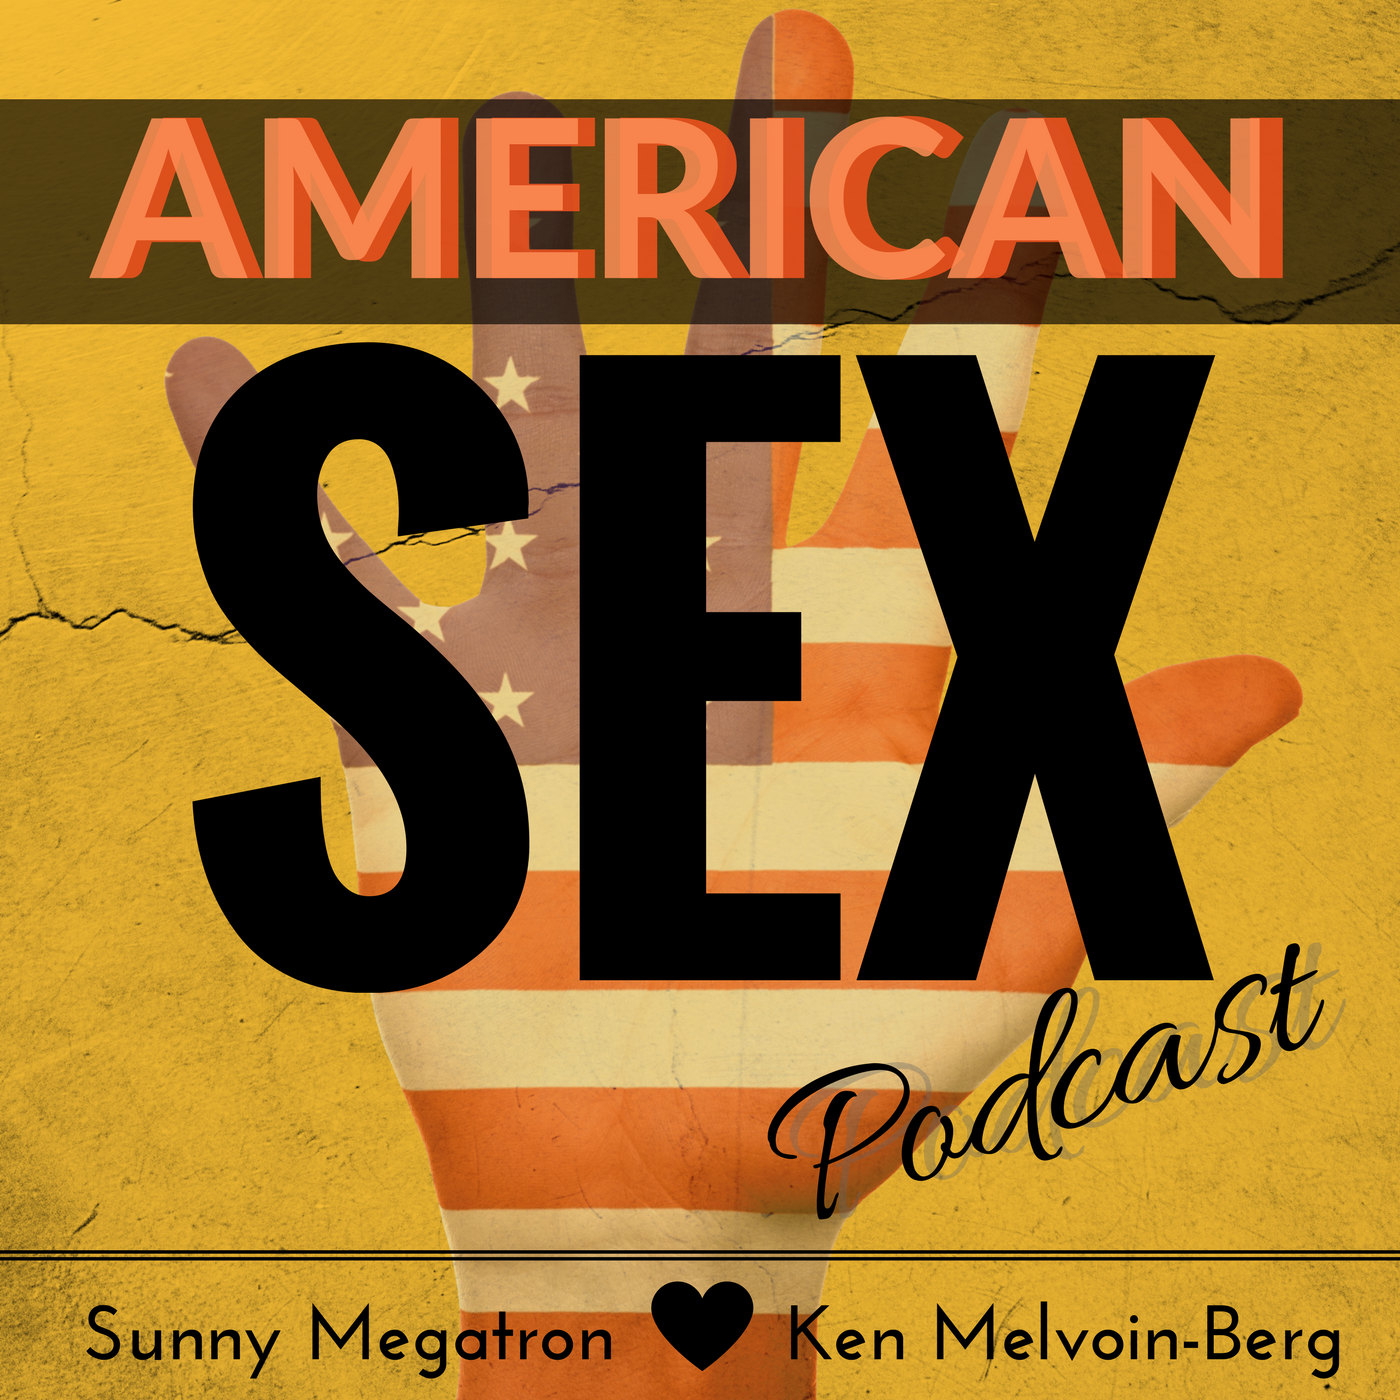 Amerikan Sex the american sex podcast has launched! | sunny megatron